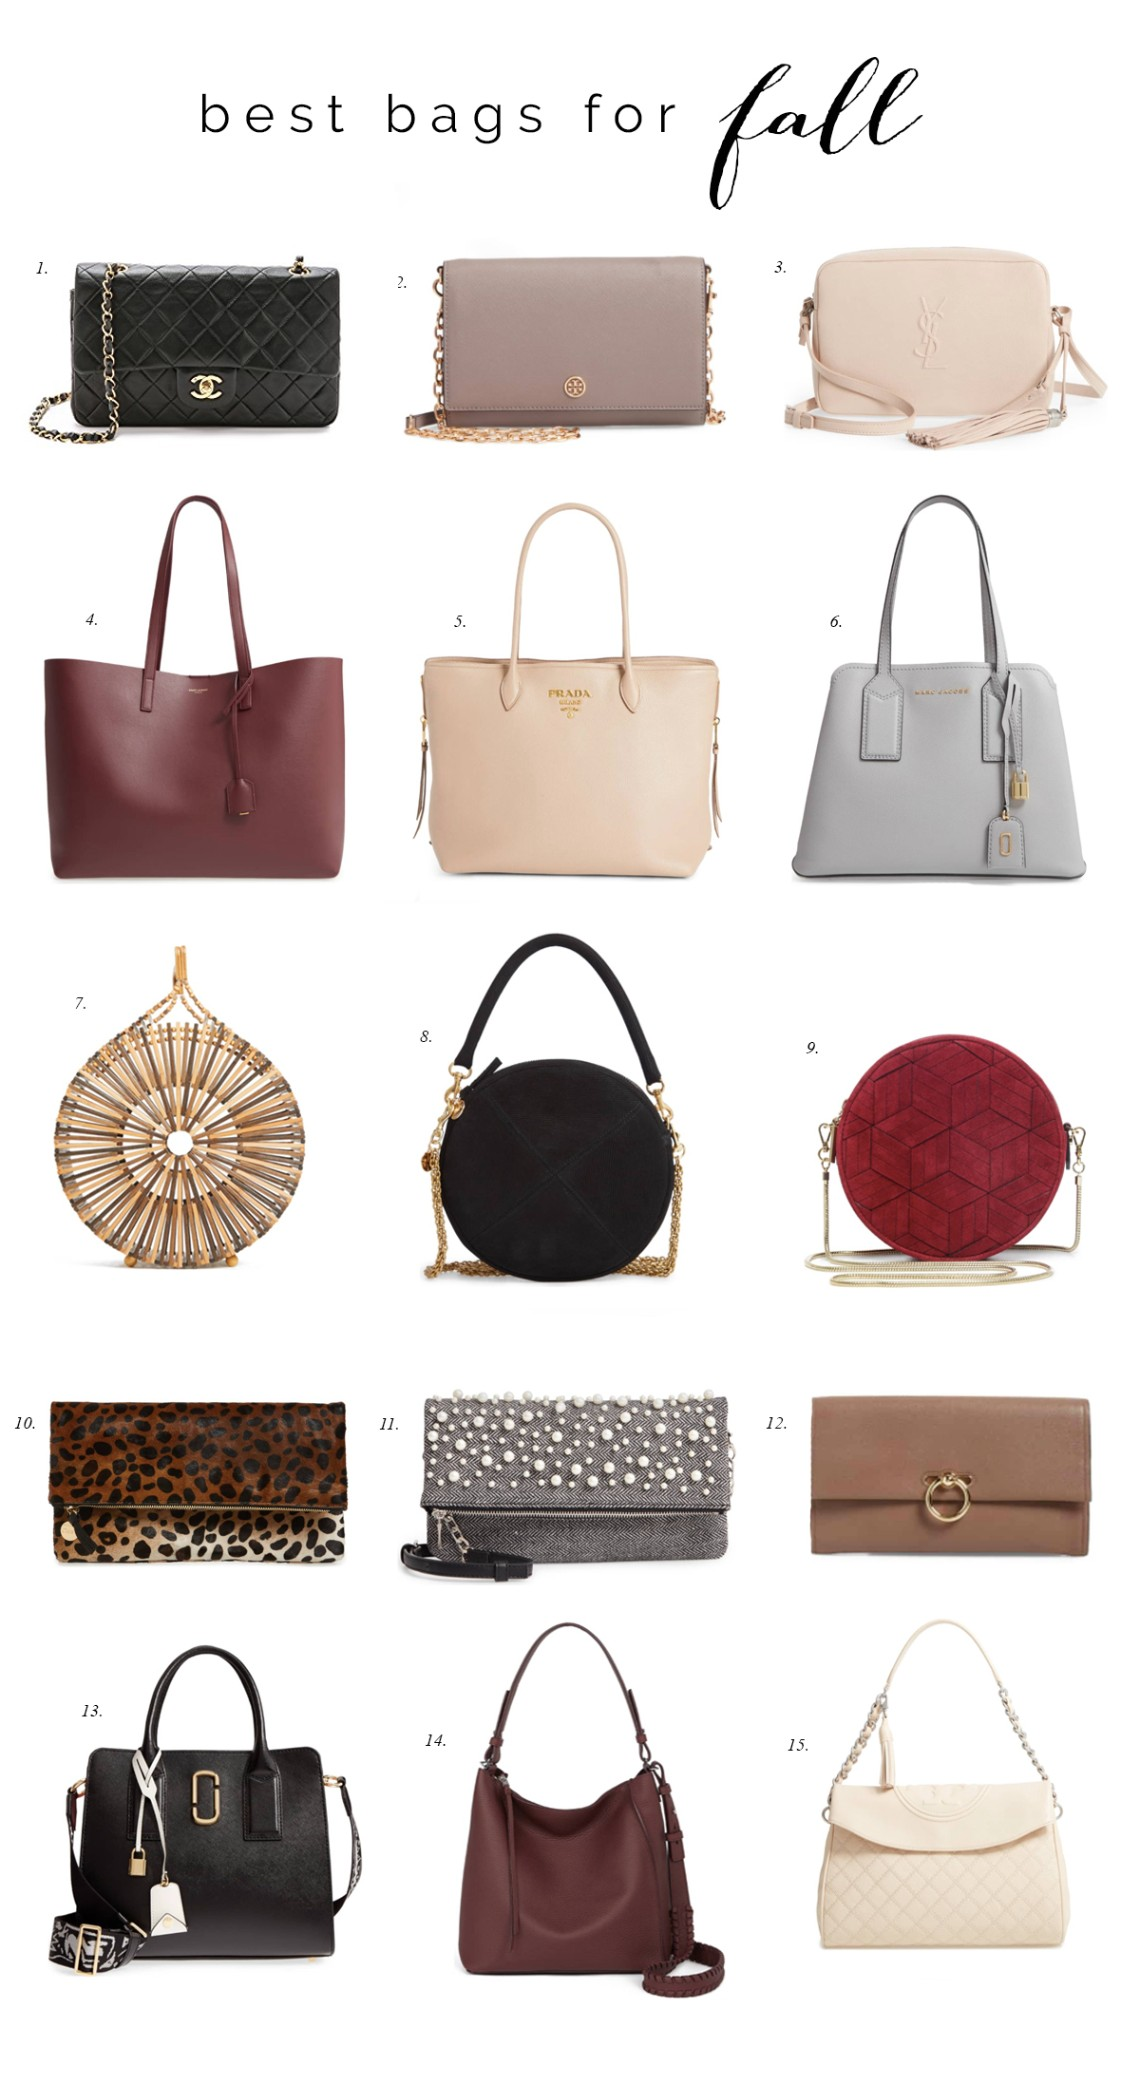 best-bags-for-fall handbag trend top us fashion blog style elixir